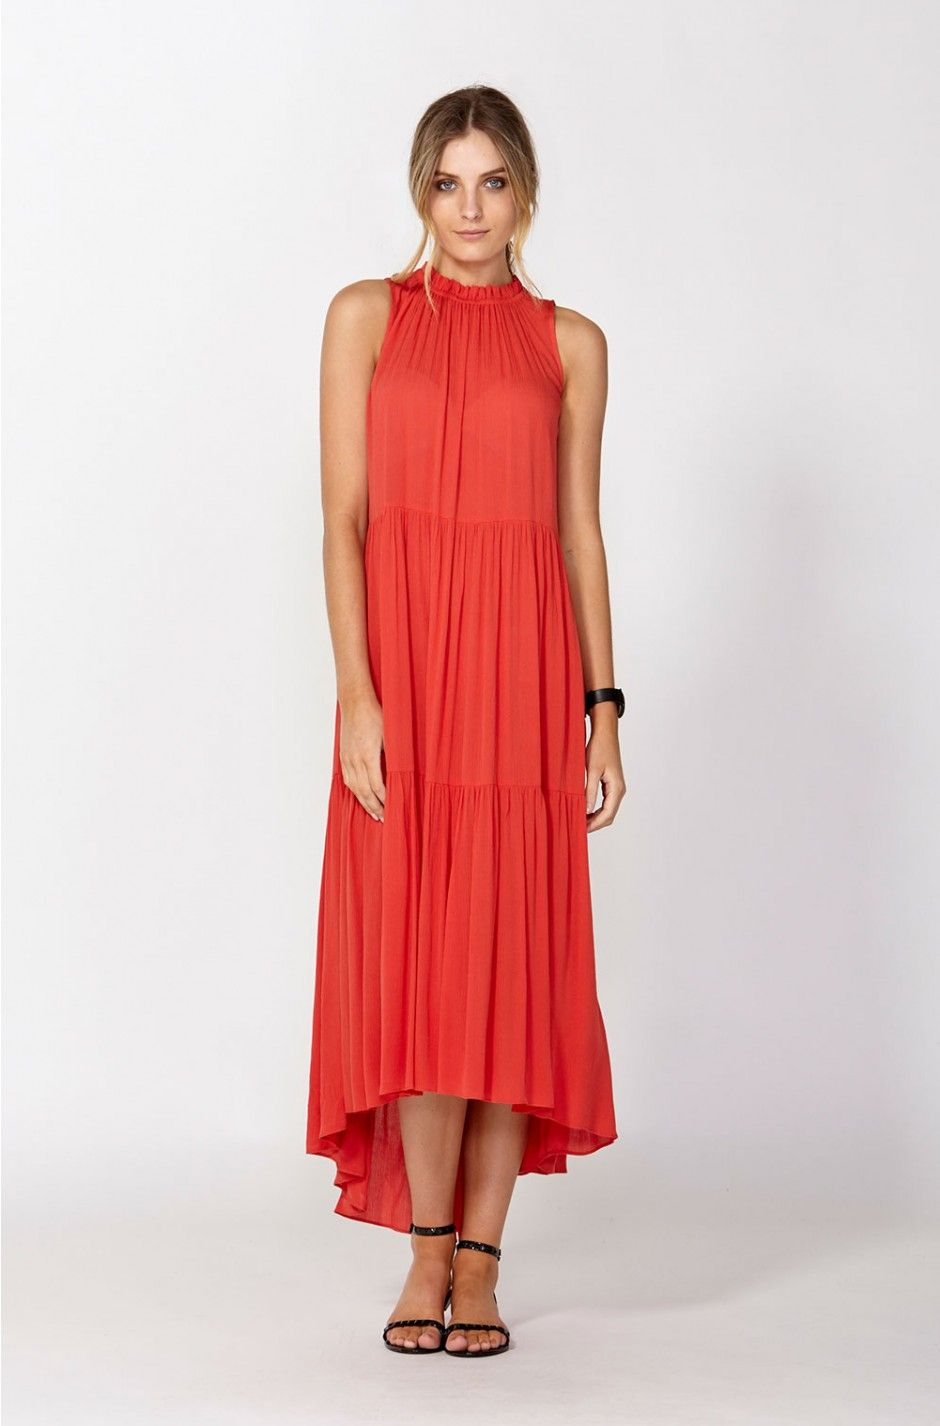 Montpellier high neck dress things to wear pinterest